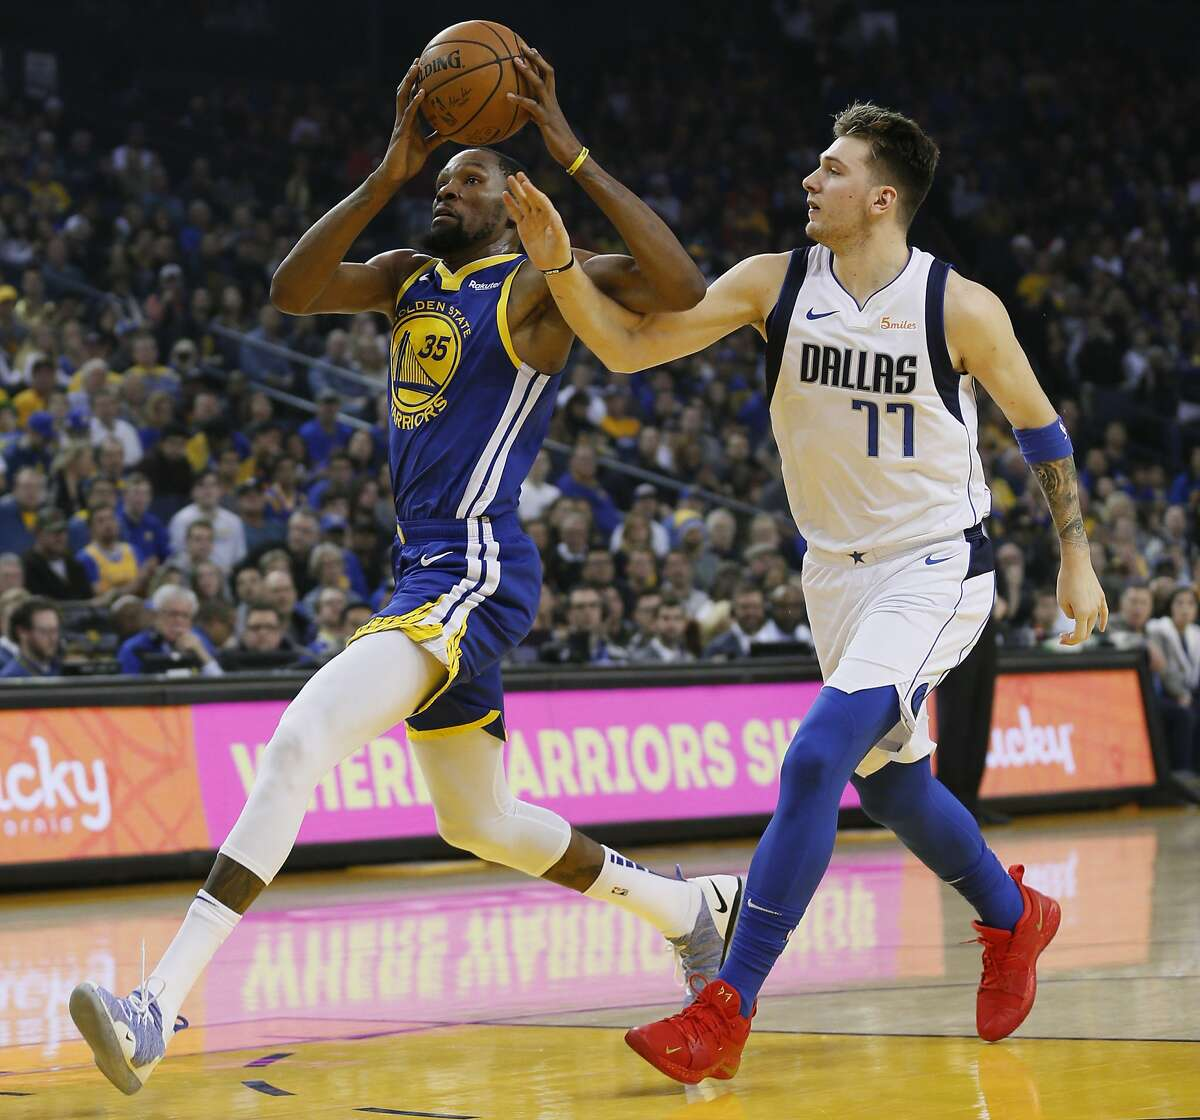 Golden State Warriors forward Kevin Durant (35) drives to the basket for a lay up against Dallas Mavericks forward Luka Doncic (77) in the first half of an NBA game at Oracle Arena on Saturday, Dec. 22, 2018, in Oakland, Calif.